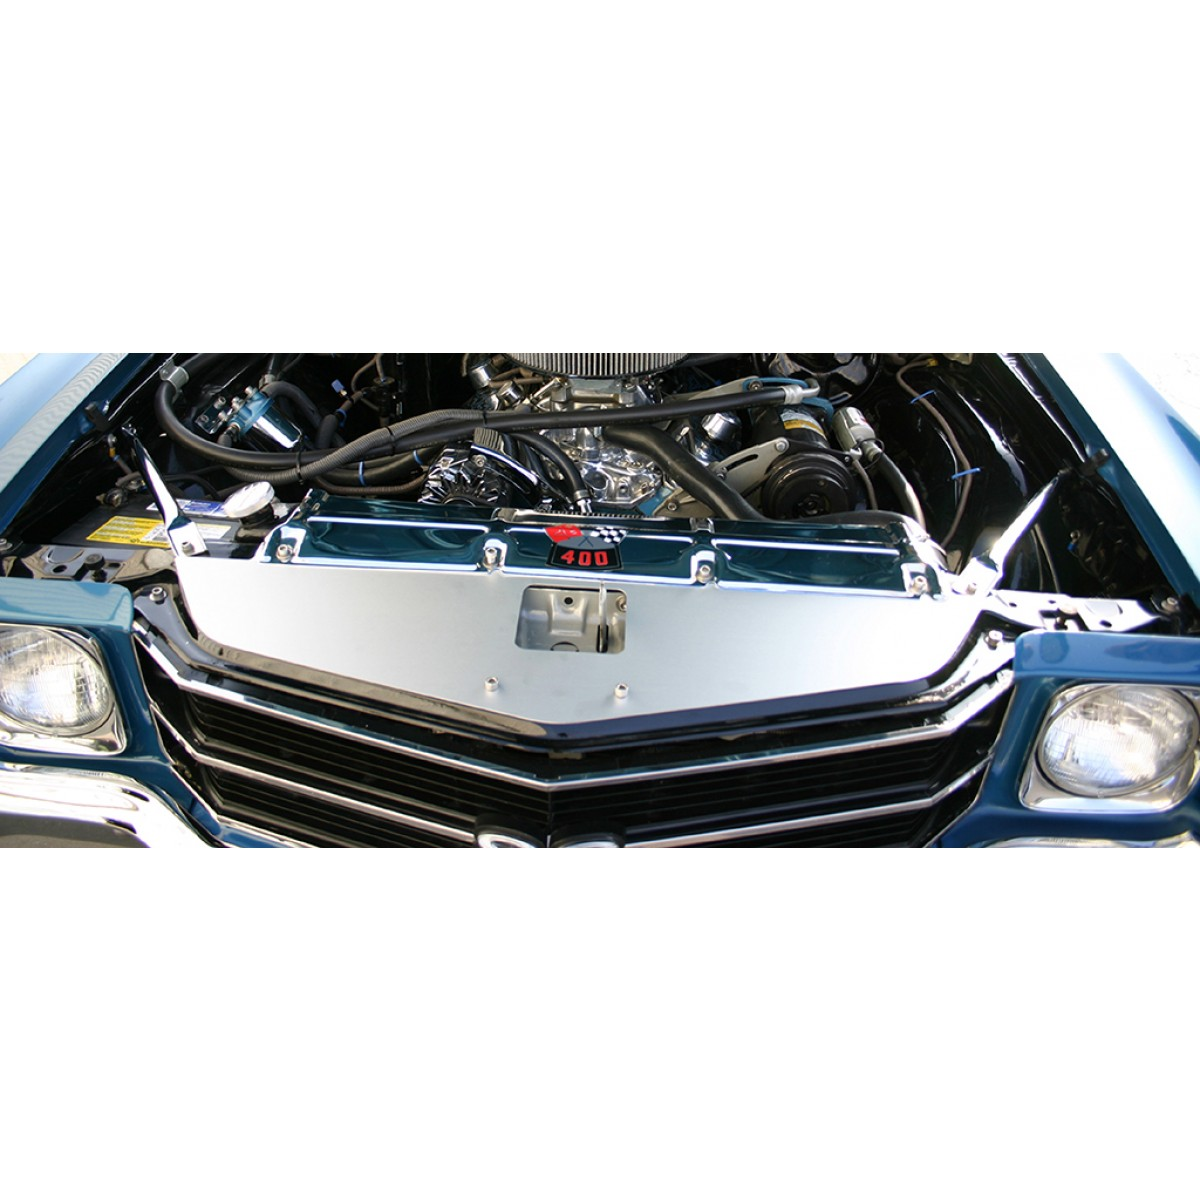 72 Monte Carlo Wiring Diagram Library 99 1970 1972 Chevelle Anodized Show Panel With Ball Milled